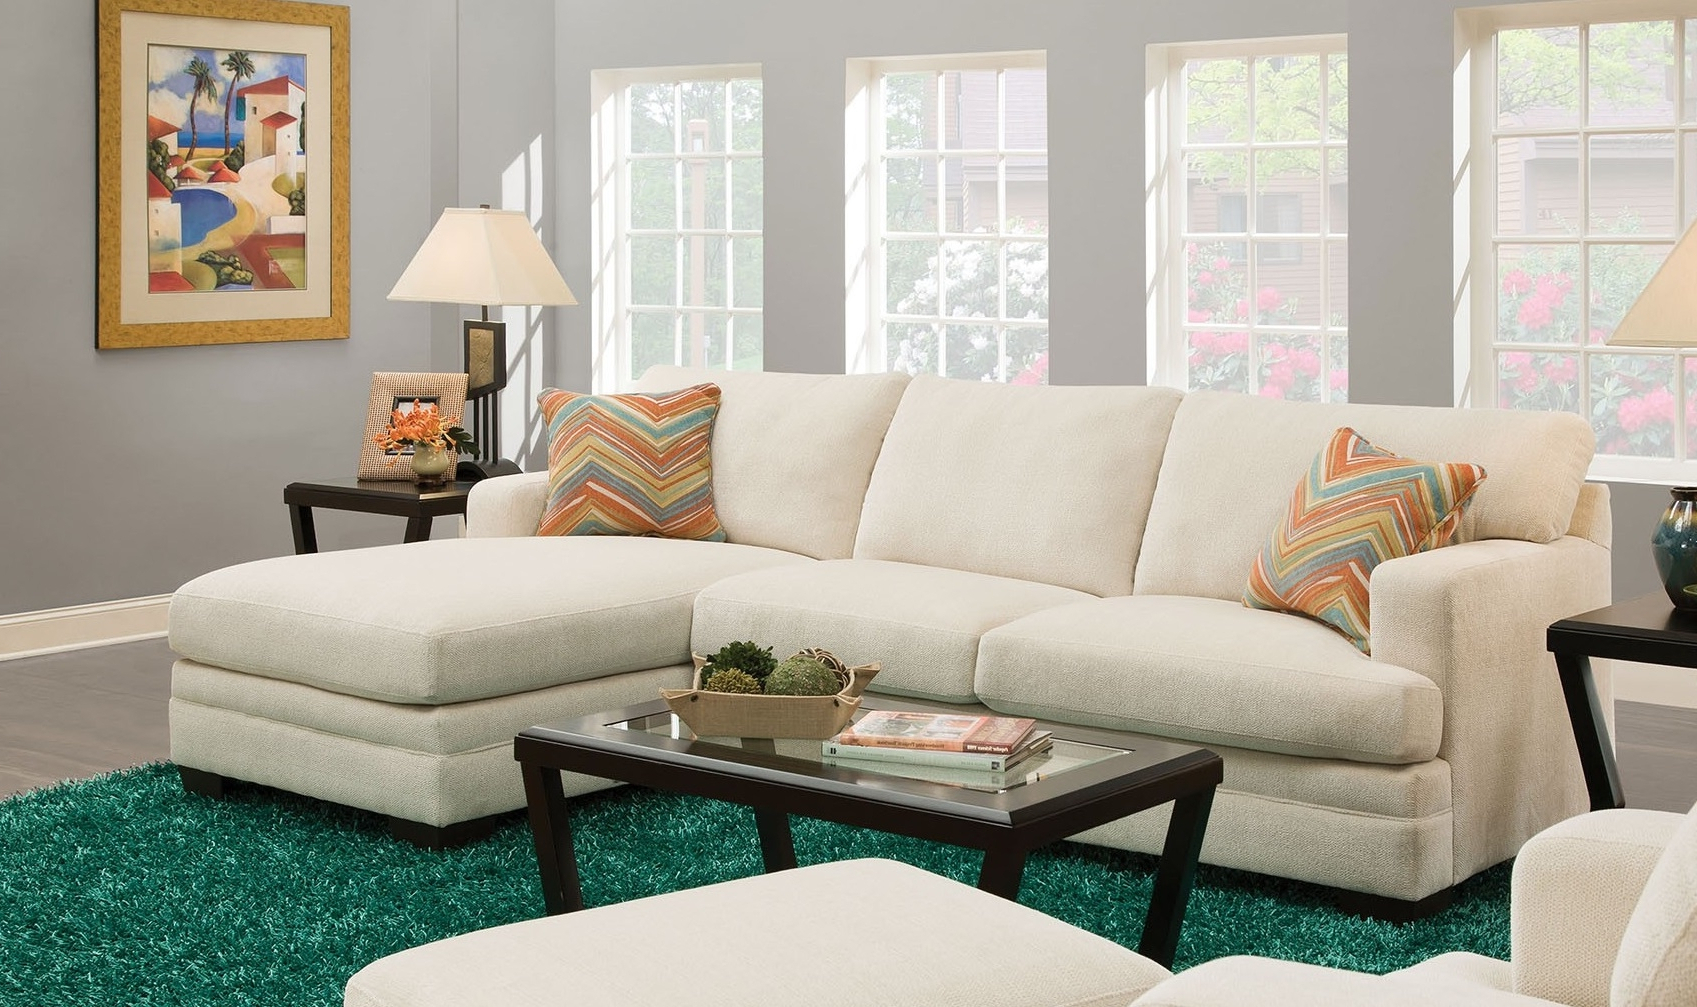 Norell 52315 106 Sectional Sofa With Left Arm Facing Sofa Inside Most Popular Kiefer Right Facing Sectional Sofas (View 17 of 20)